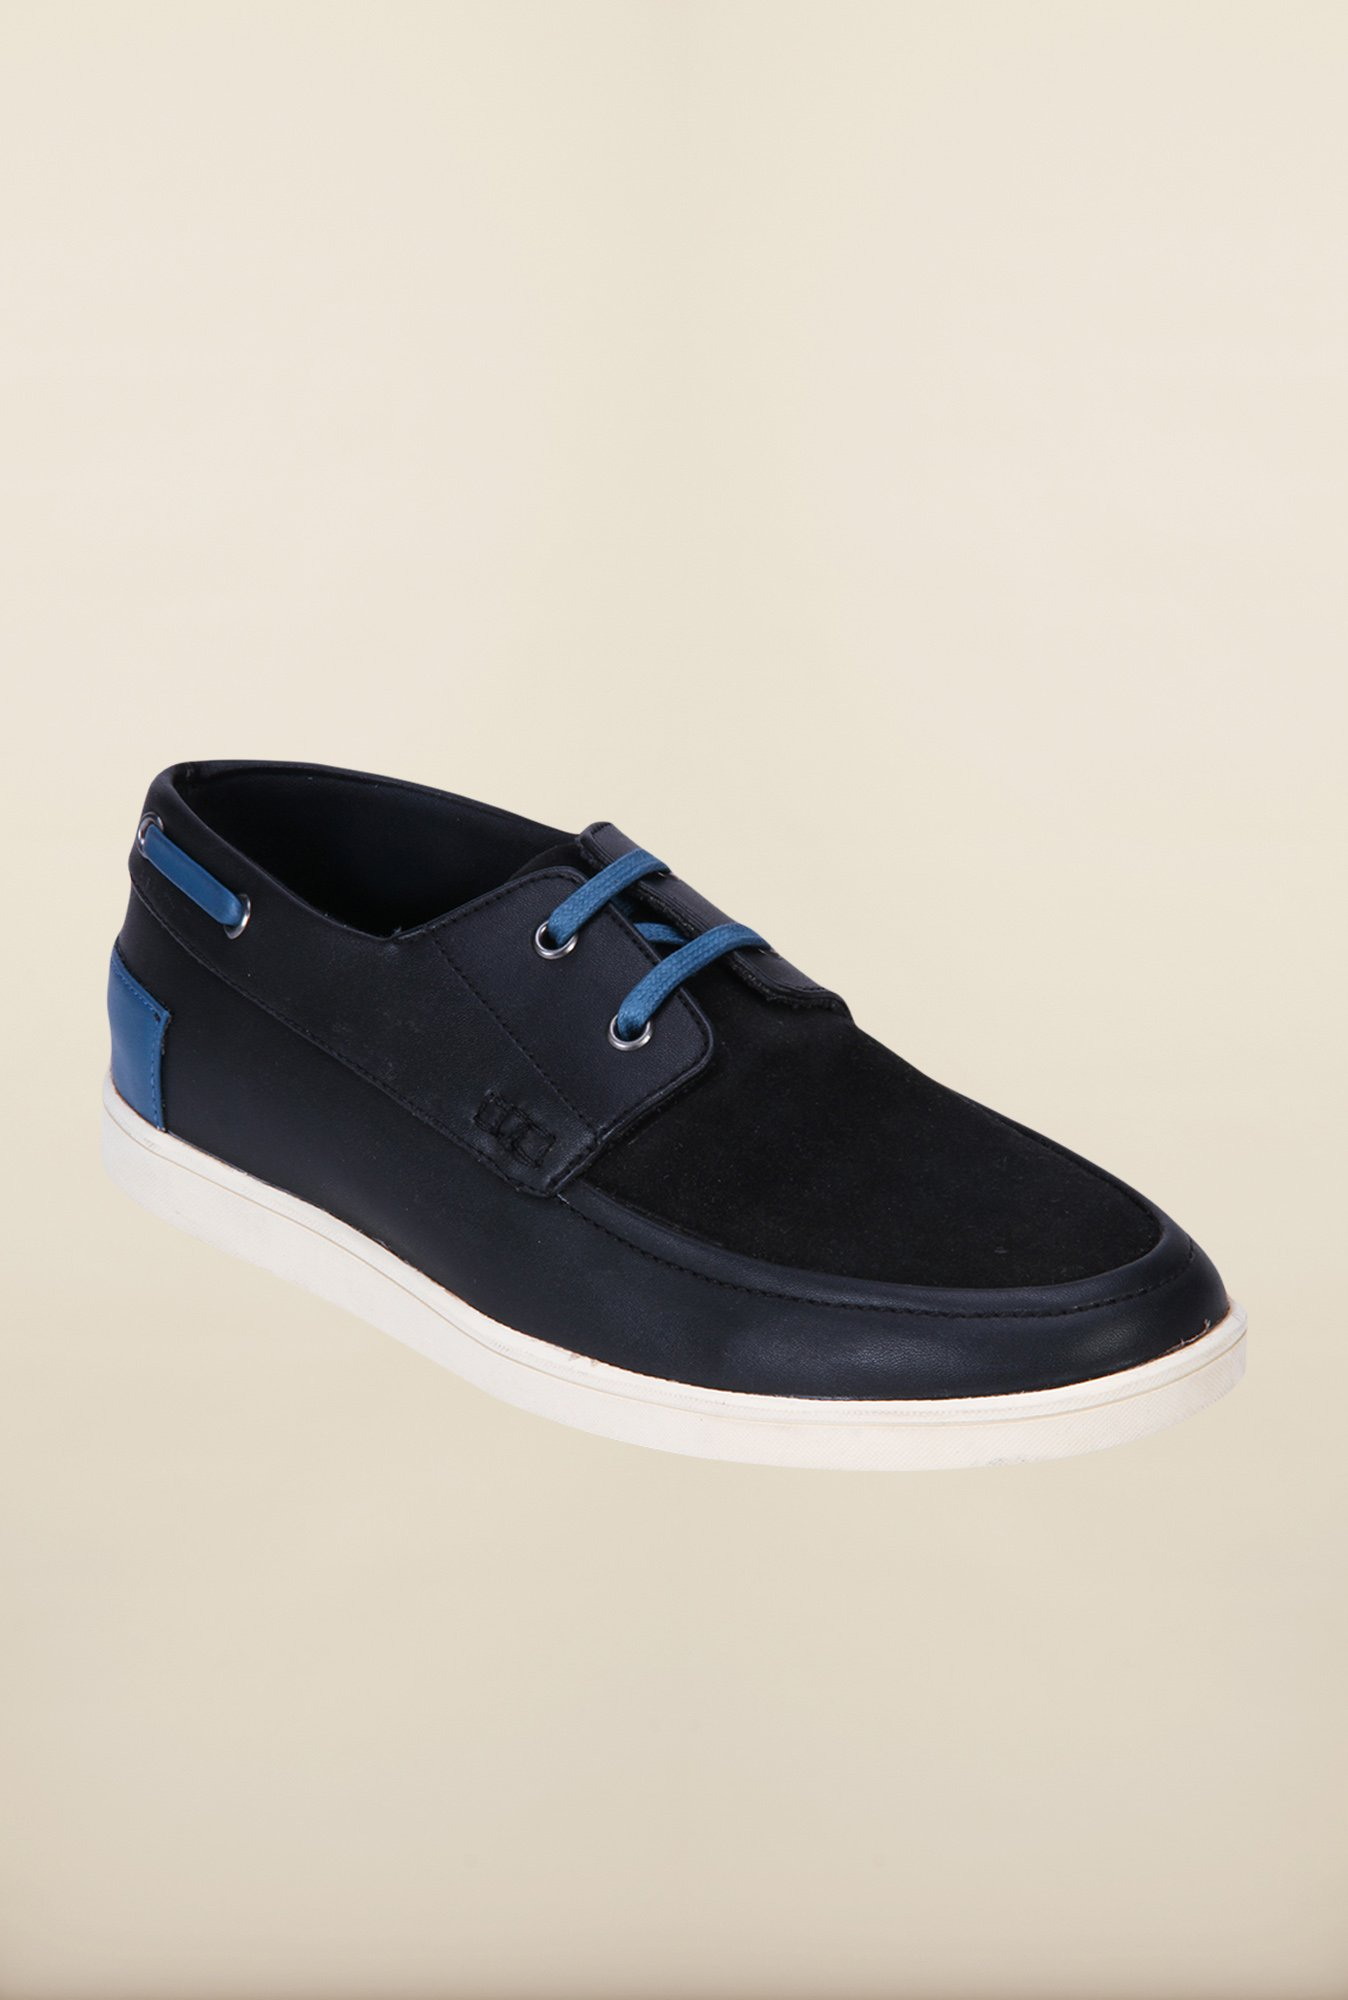 Franco Leone Black Boat Shoes